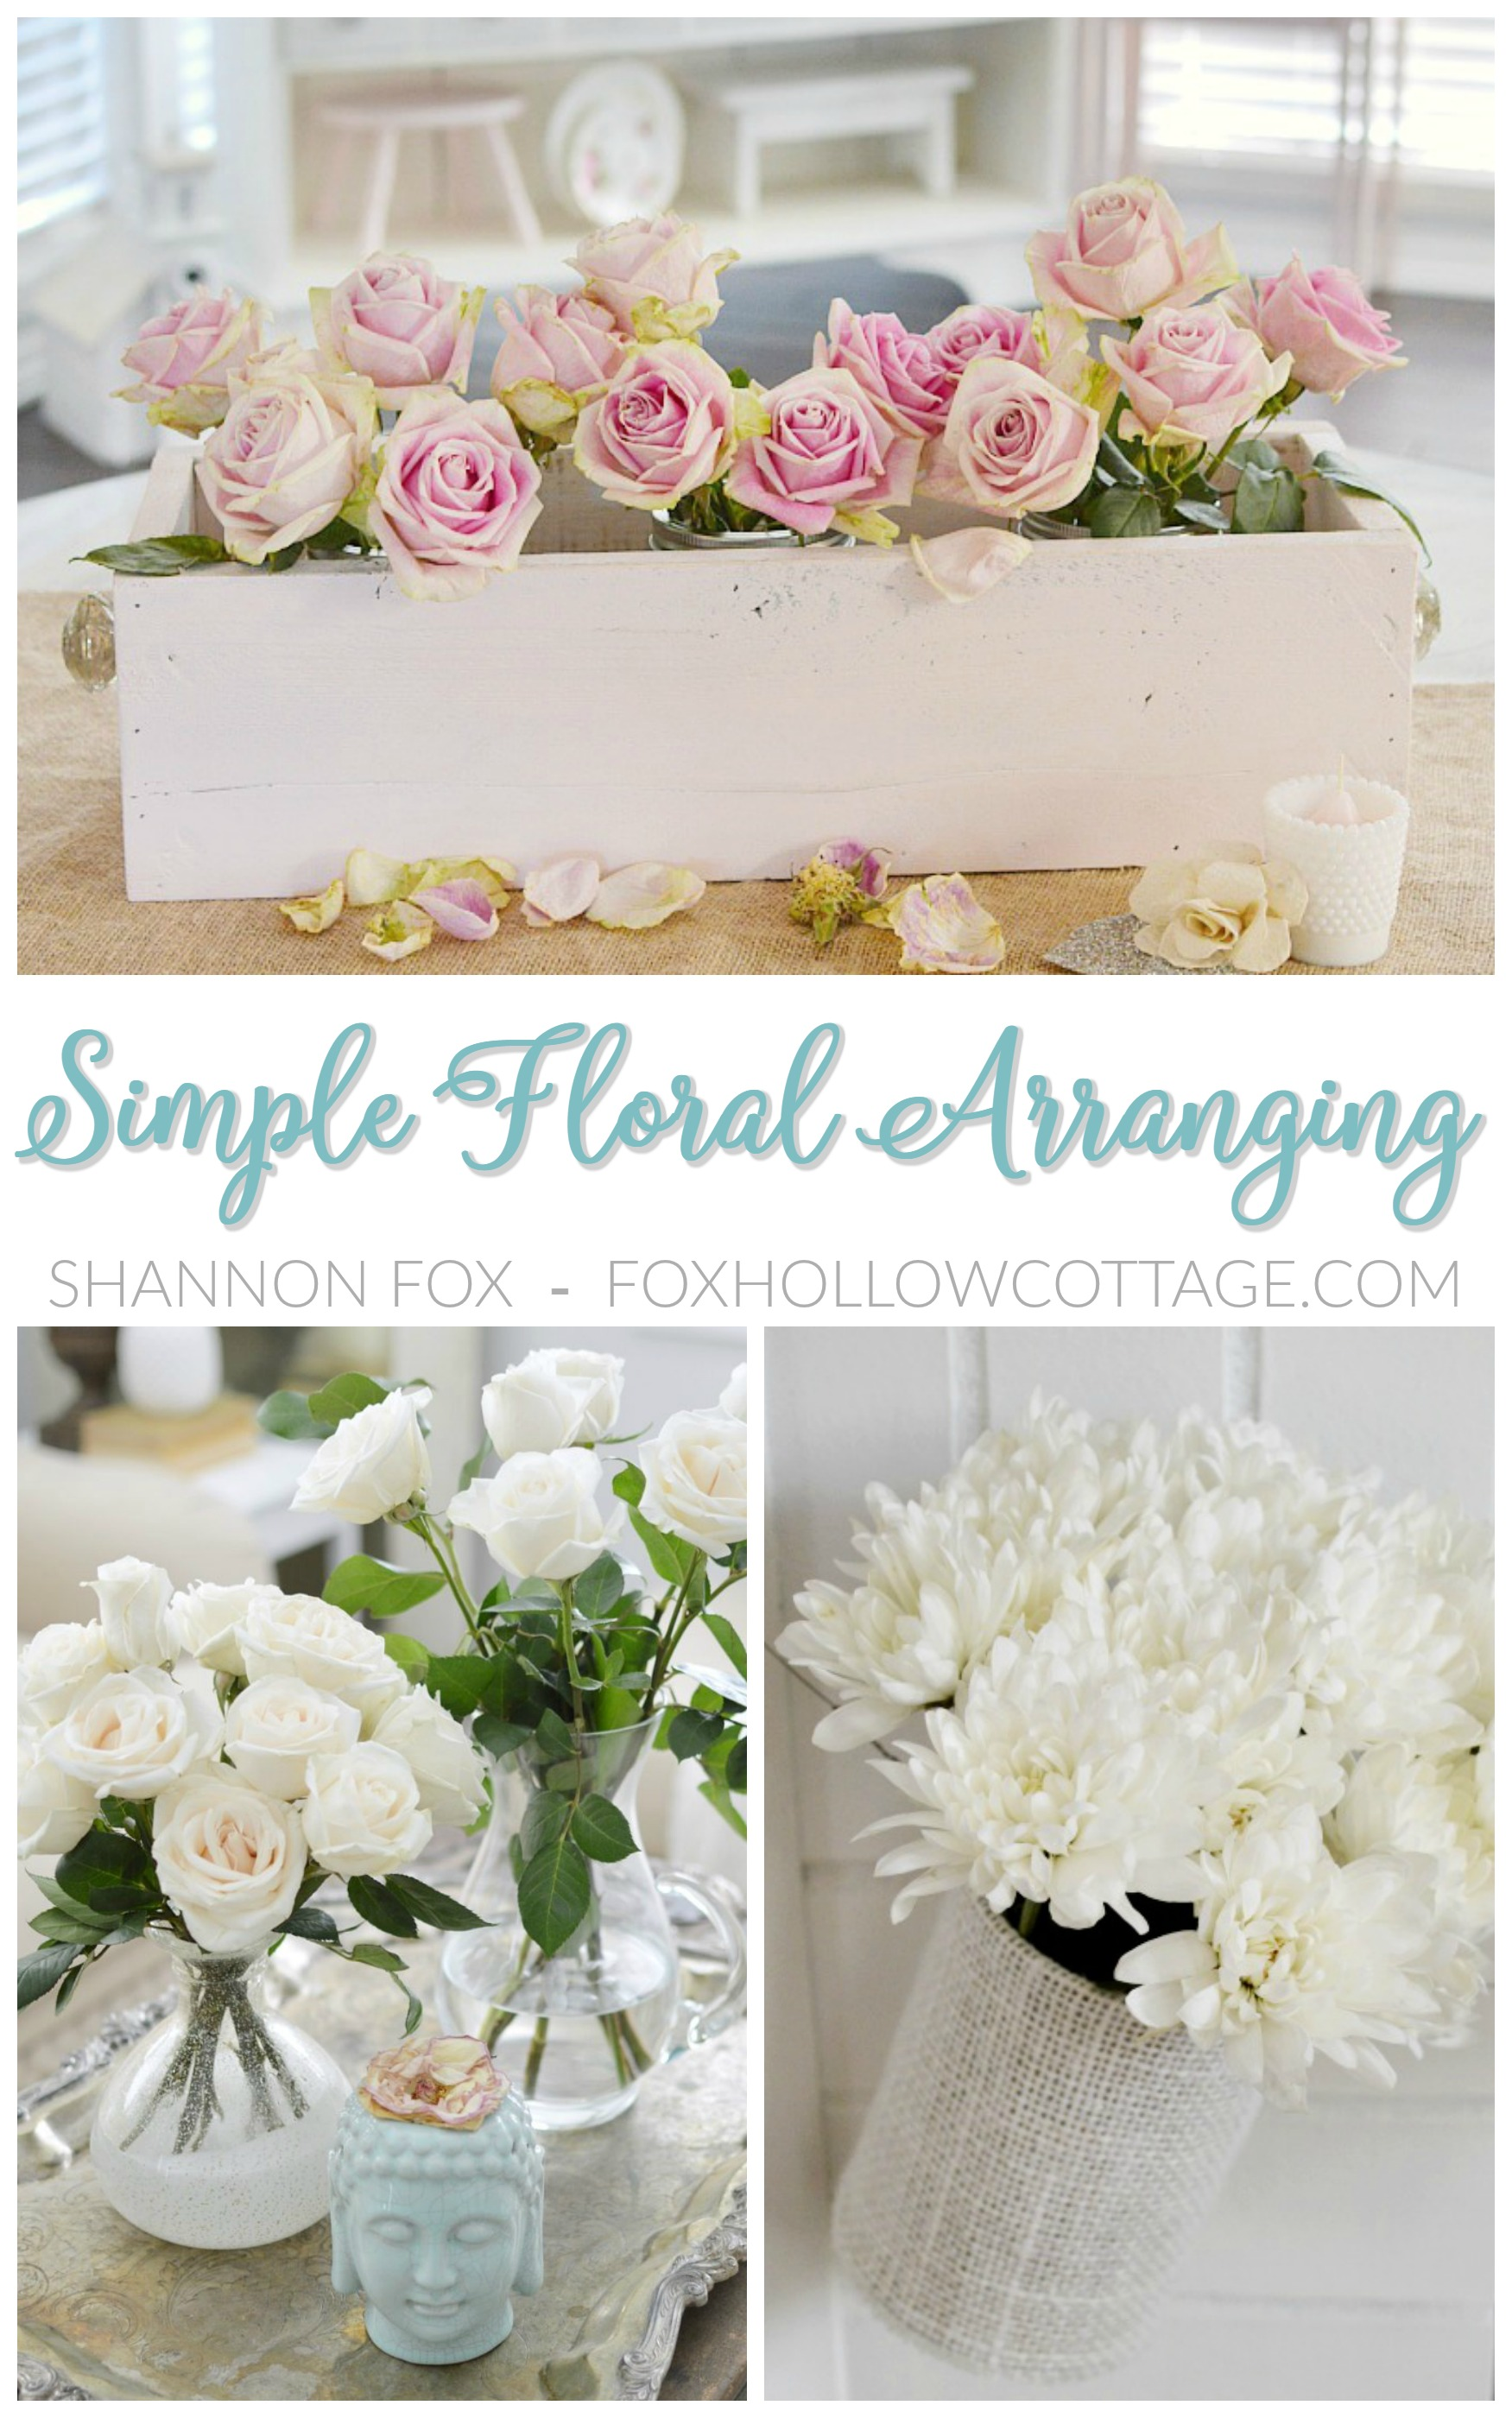 Simple floral arranging tips and ideas. Easy, how to tutorials at foxhollowcottage.com by Shannon Fox